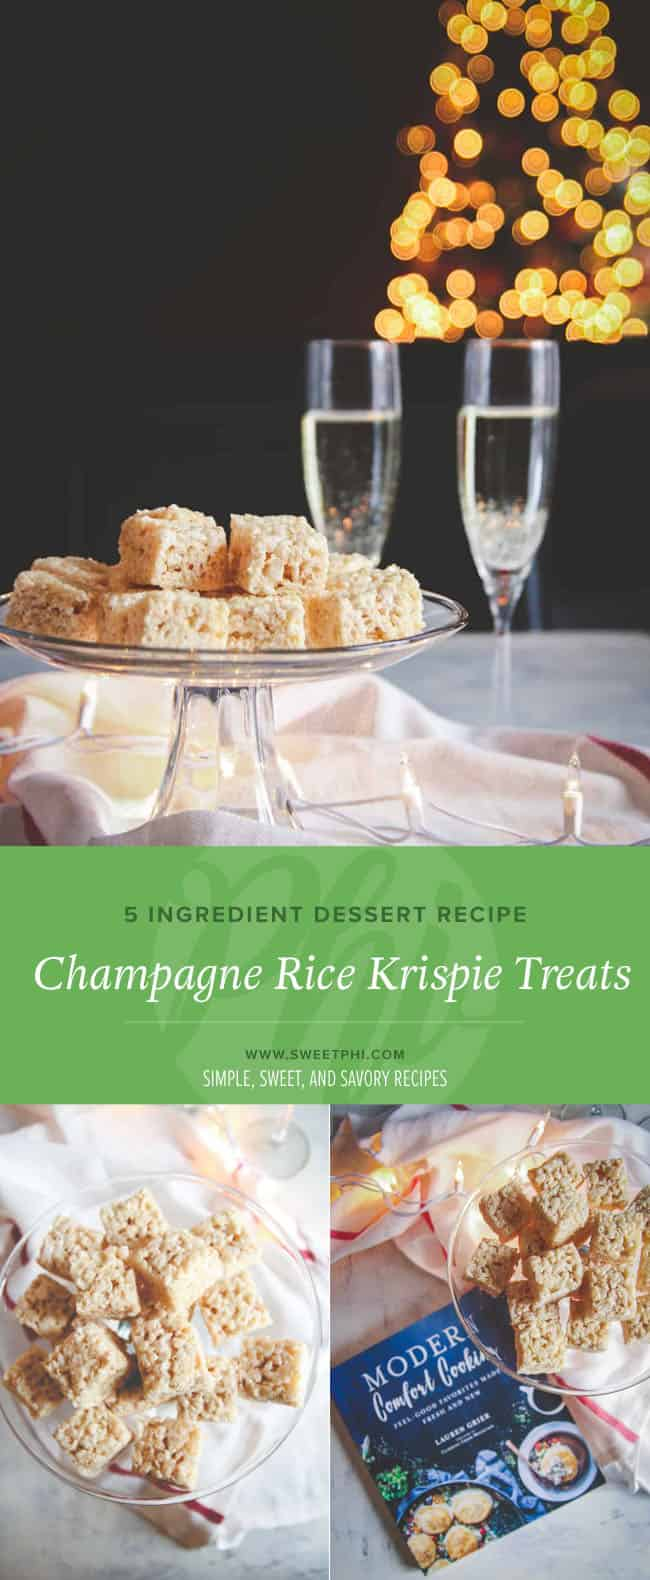 The perfect addition to any New Year's Party - champagne rice krispie treats! Sweet and Delicious!